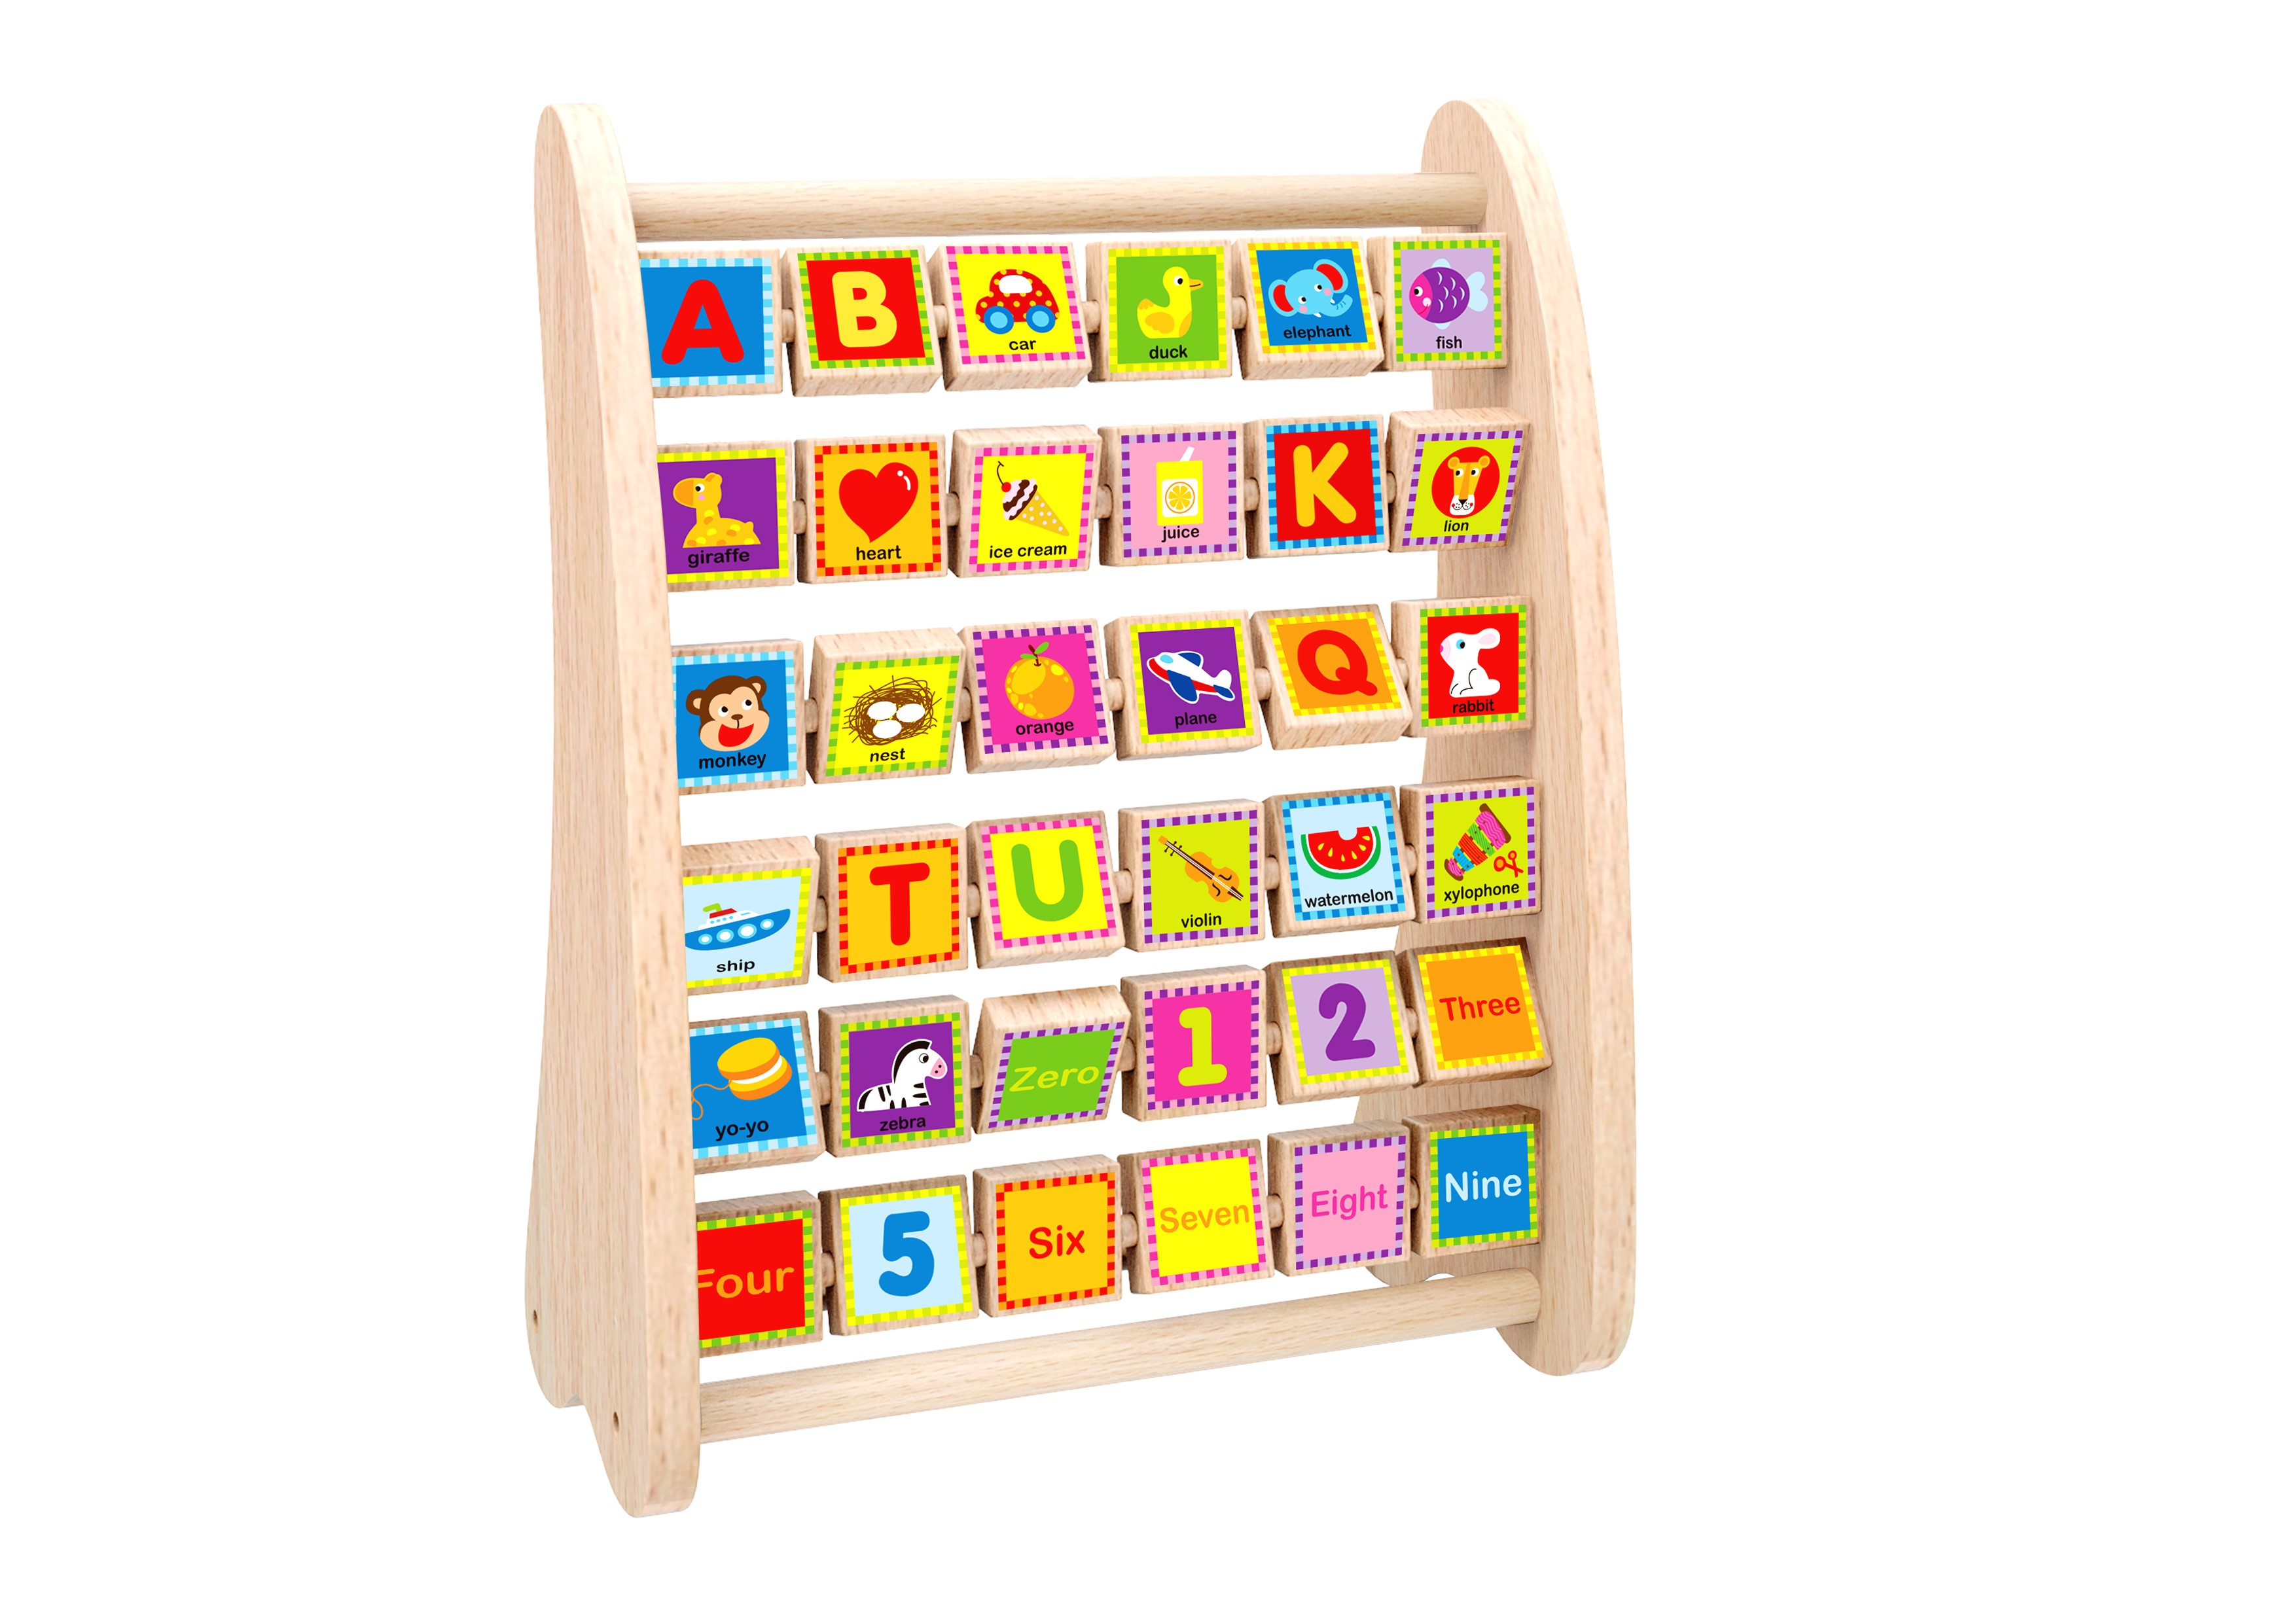 Toysters Wooden Alphabet And Number Abacus Colorful Abc Blocks And Math Learning Activity Center For Toddlers Educational Montessori Toy Helps